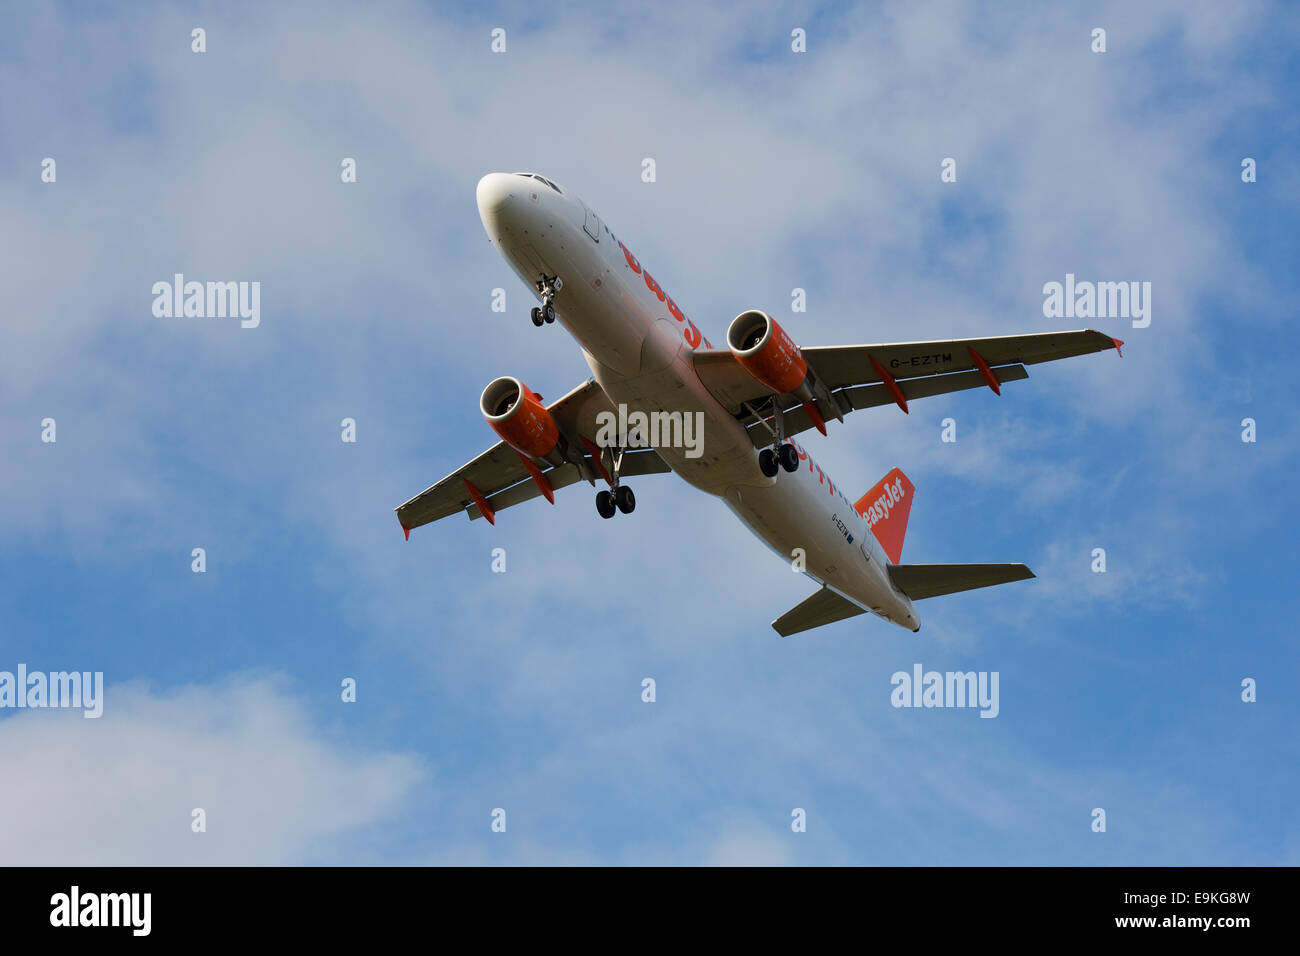 Airbus A320-214 G-EZTM EasyJet on approach to land at Manchester Airport - Stock Image